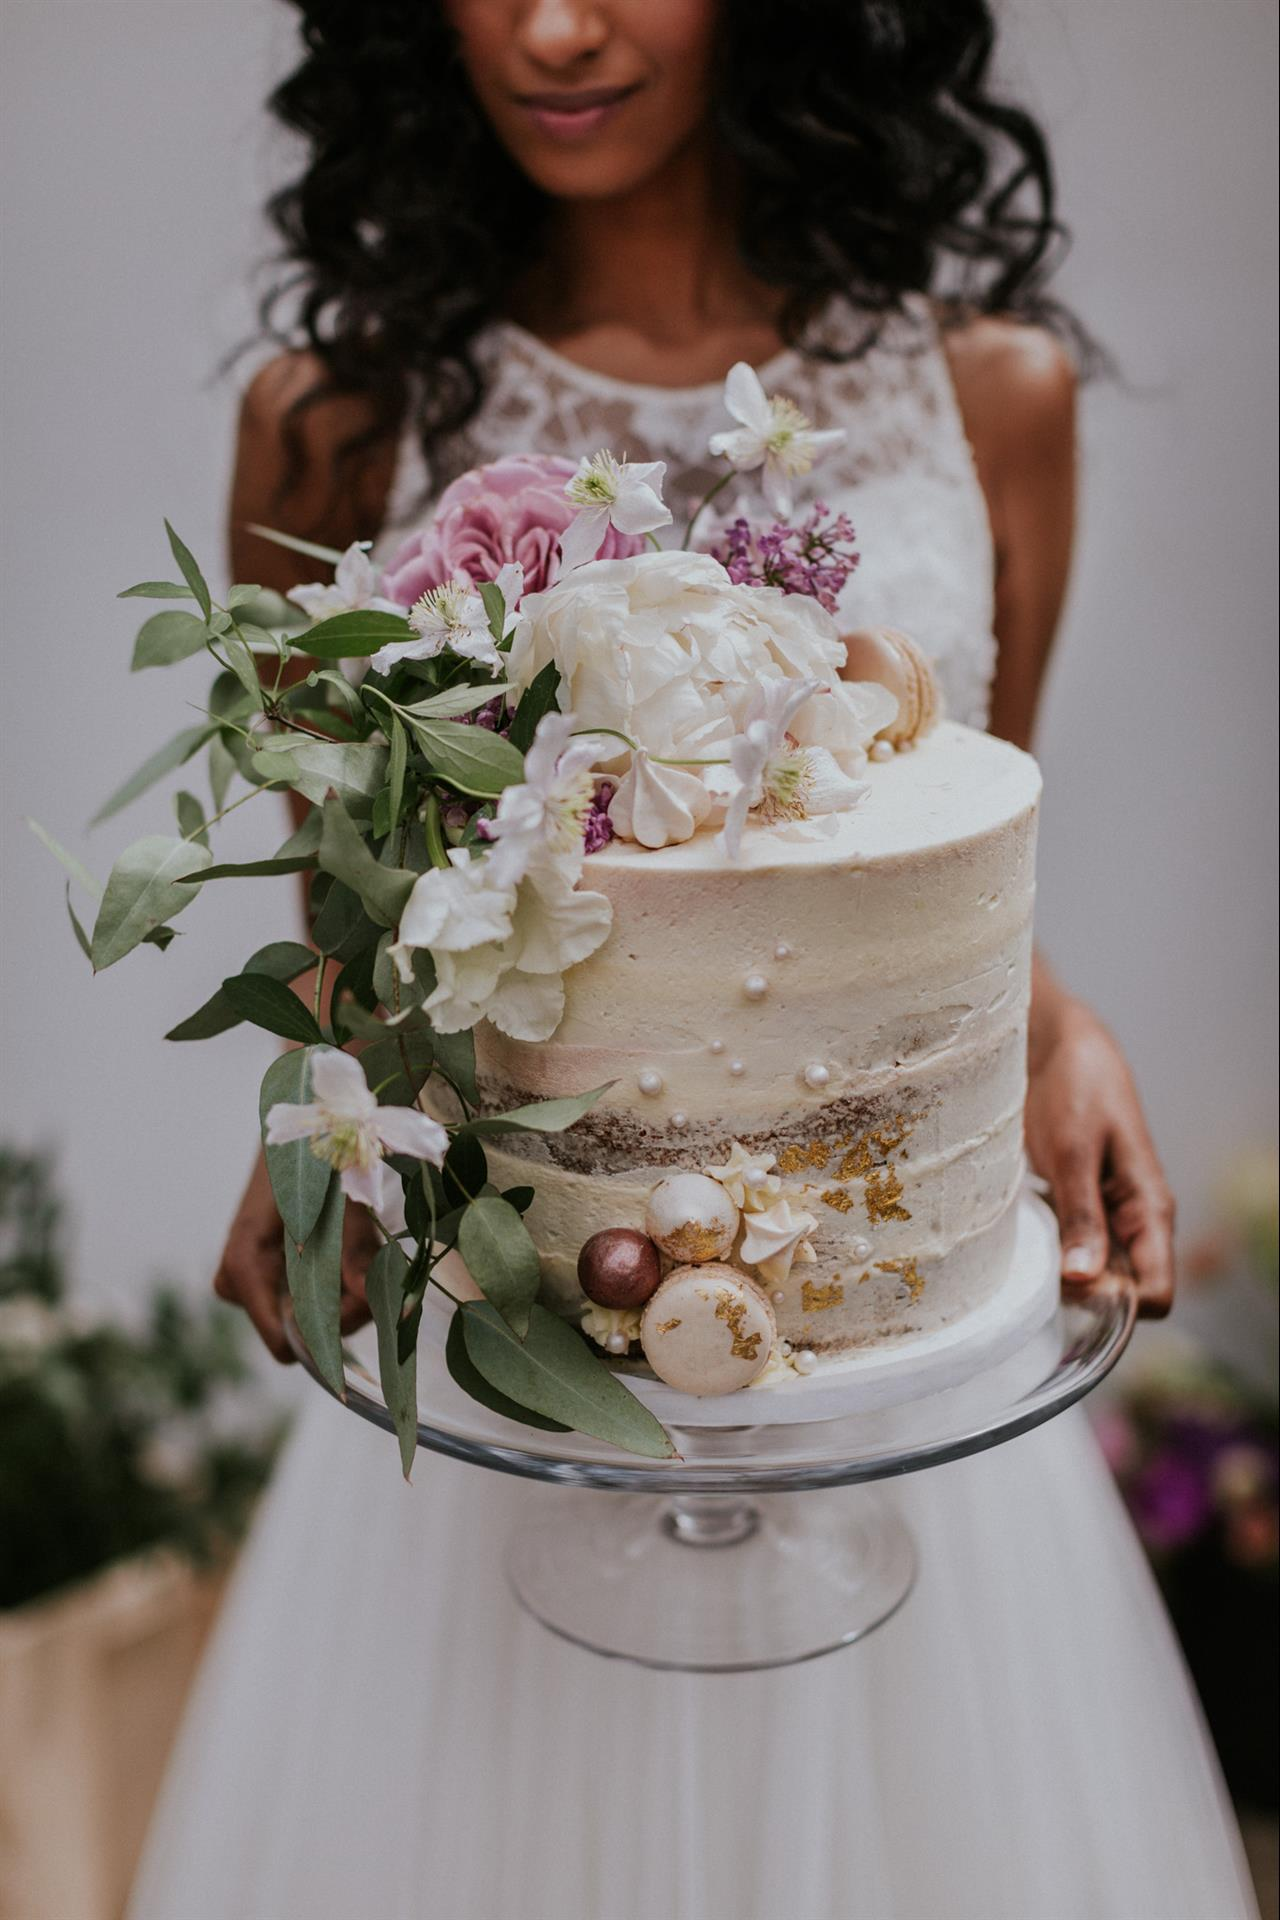 A stunning buttercream wedding cake brimming with English florals and luxurious details.